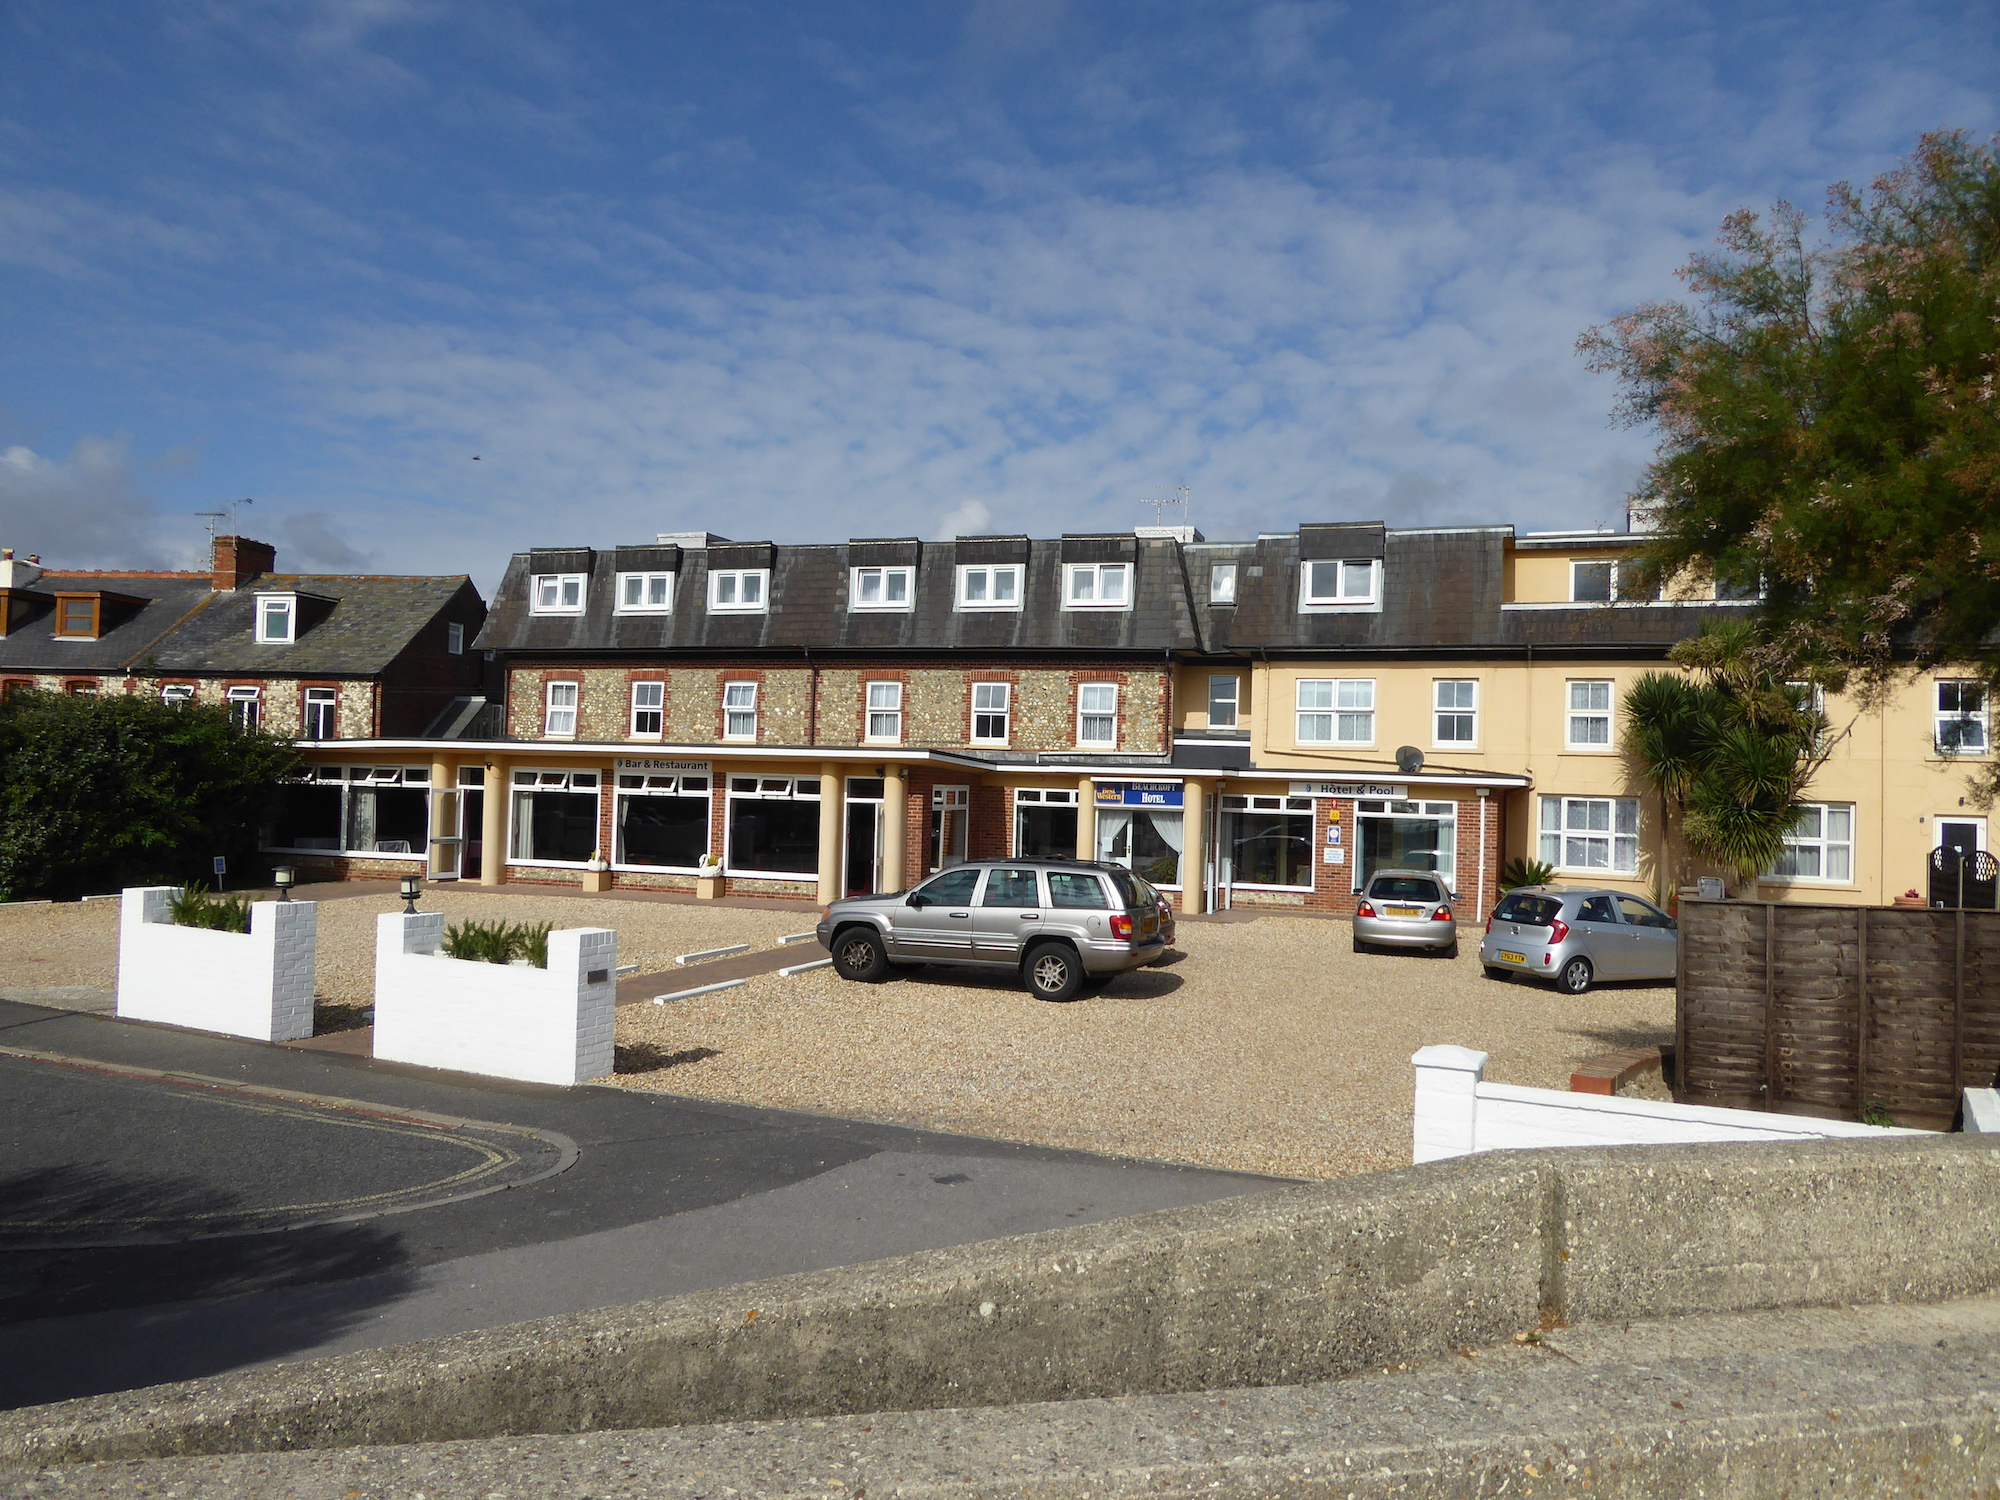 Th Beachcroft Hotel